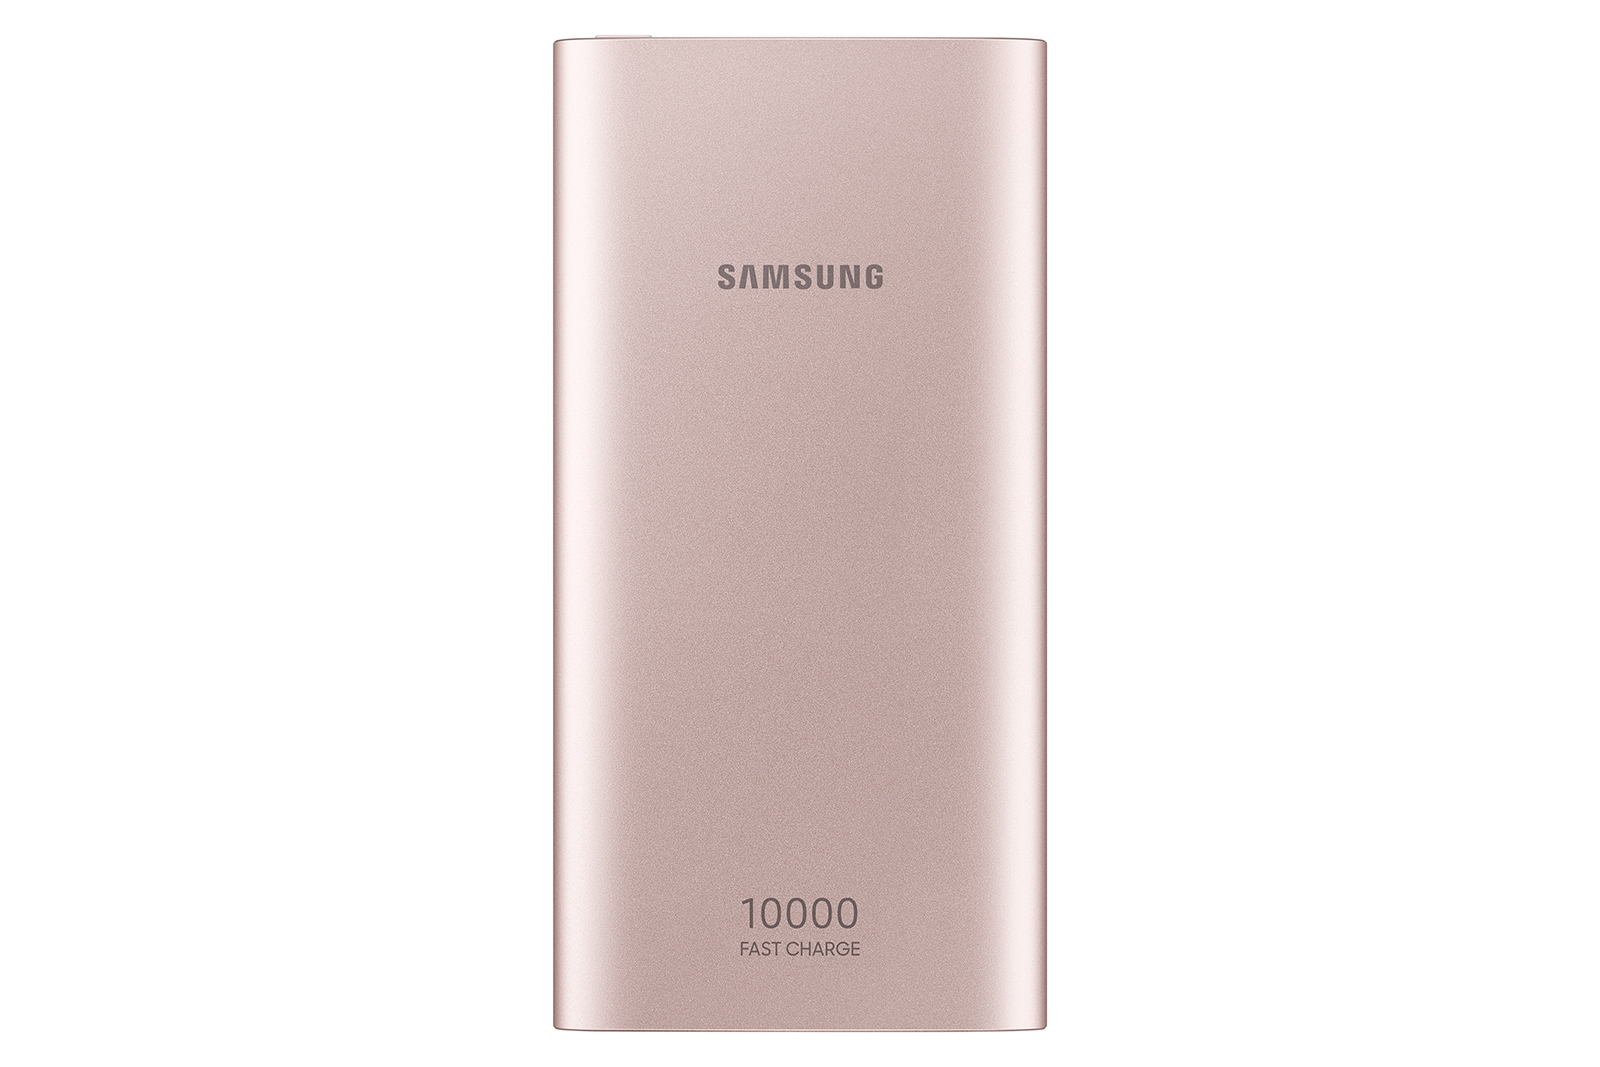 Samsung 10,000 mAh Portable Battery with Micro USB Cable, Pink